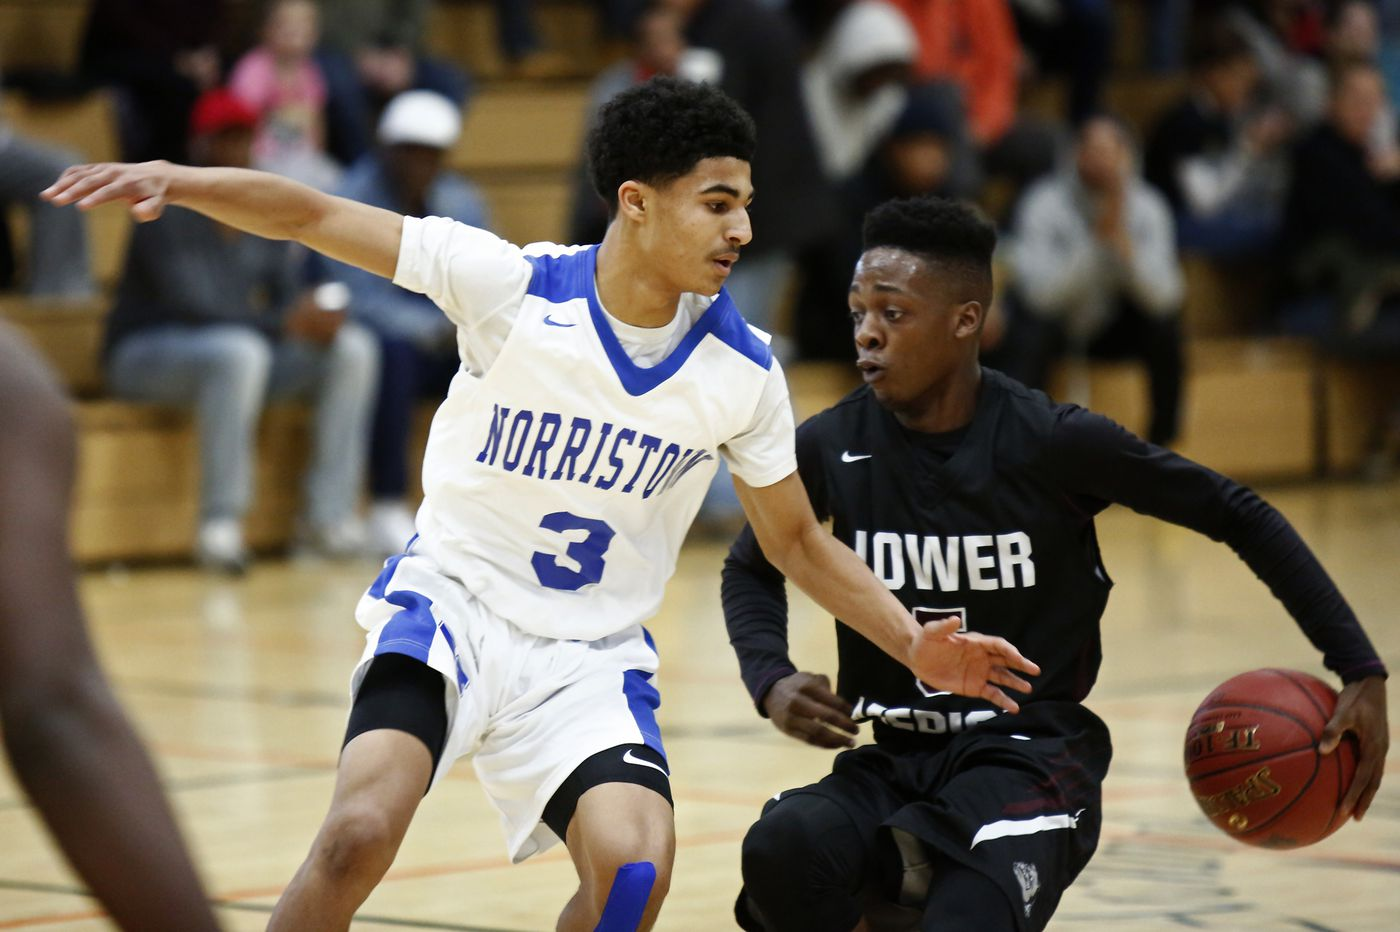 Norristown's balanced attack too much for Lower Merion in Diane Mosco Foundation Shootout